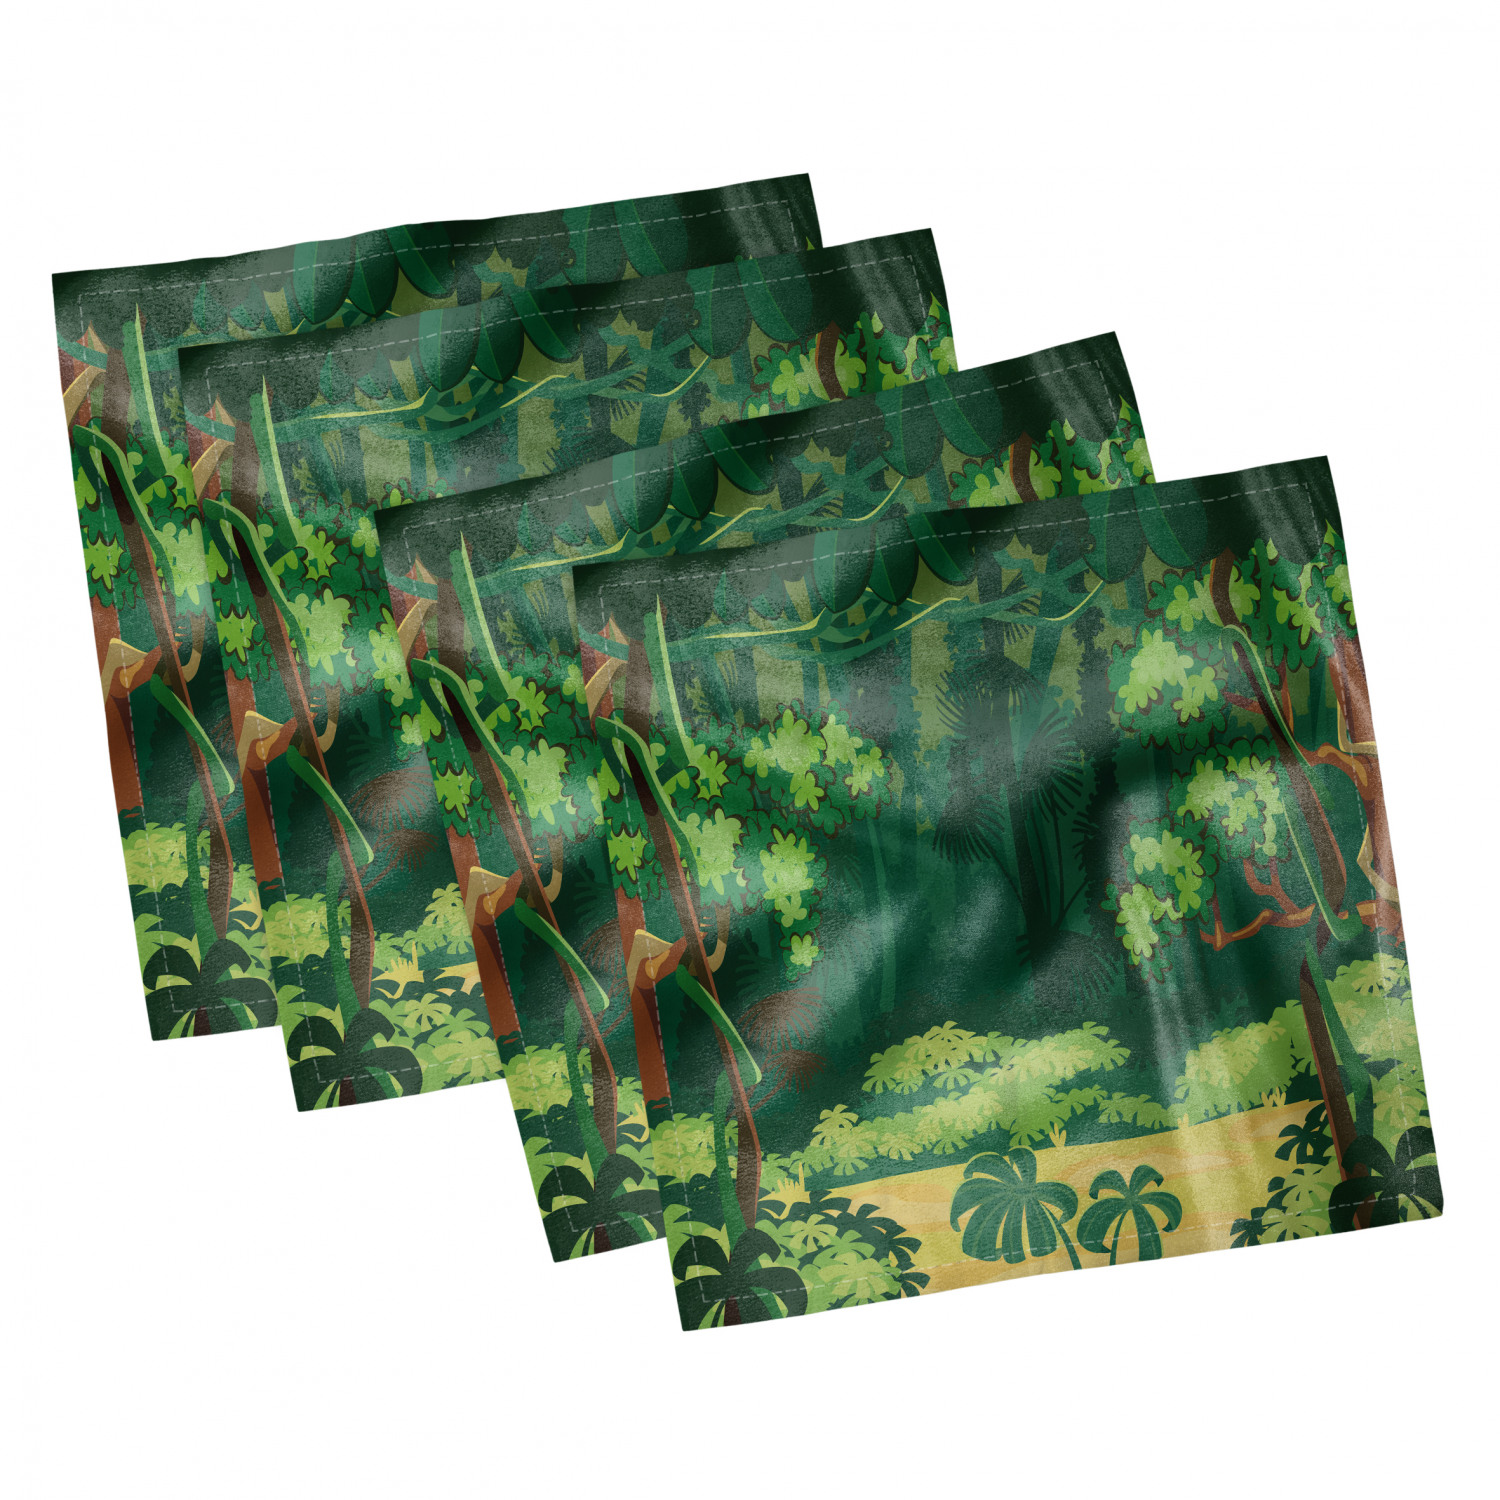 thumbnail 81 - Ambesonne-Leaves-Forest-Decorative-Satin-Napkins-Set-of-4-Party-Dinner-Fabric